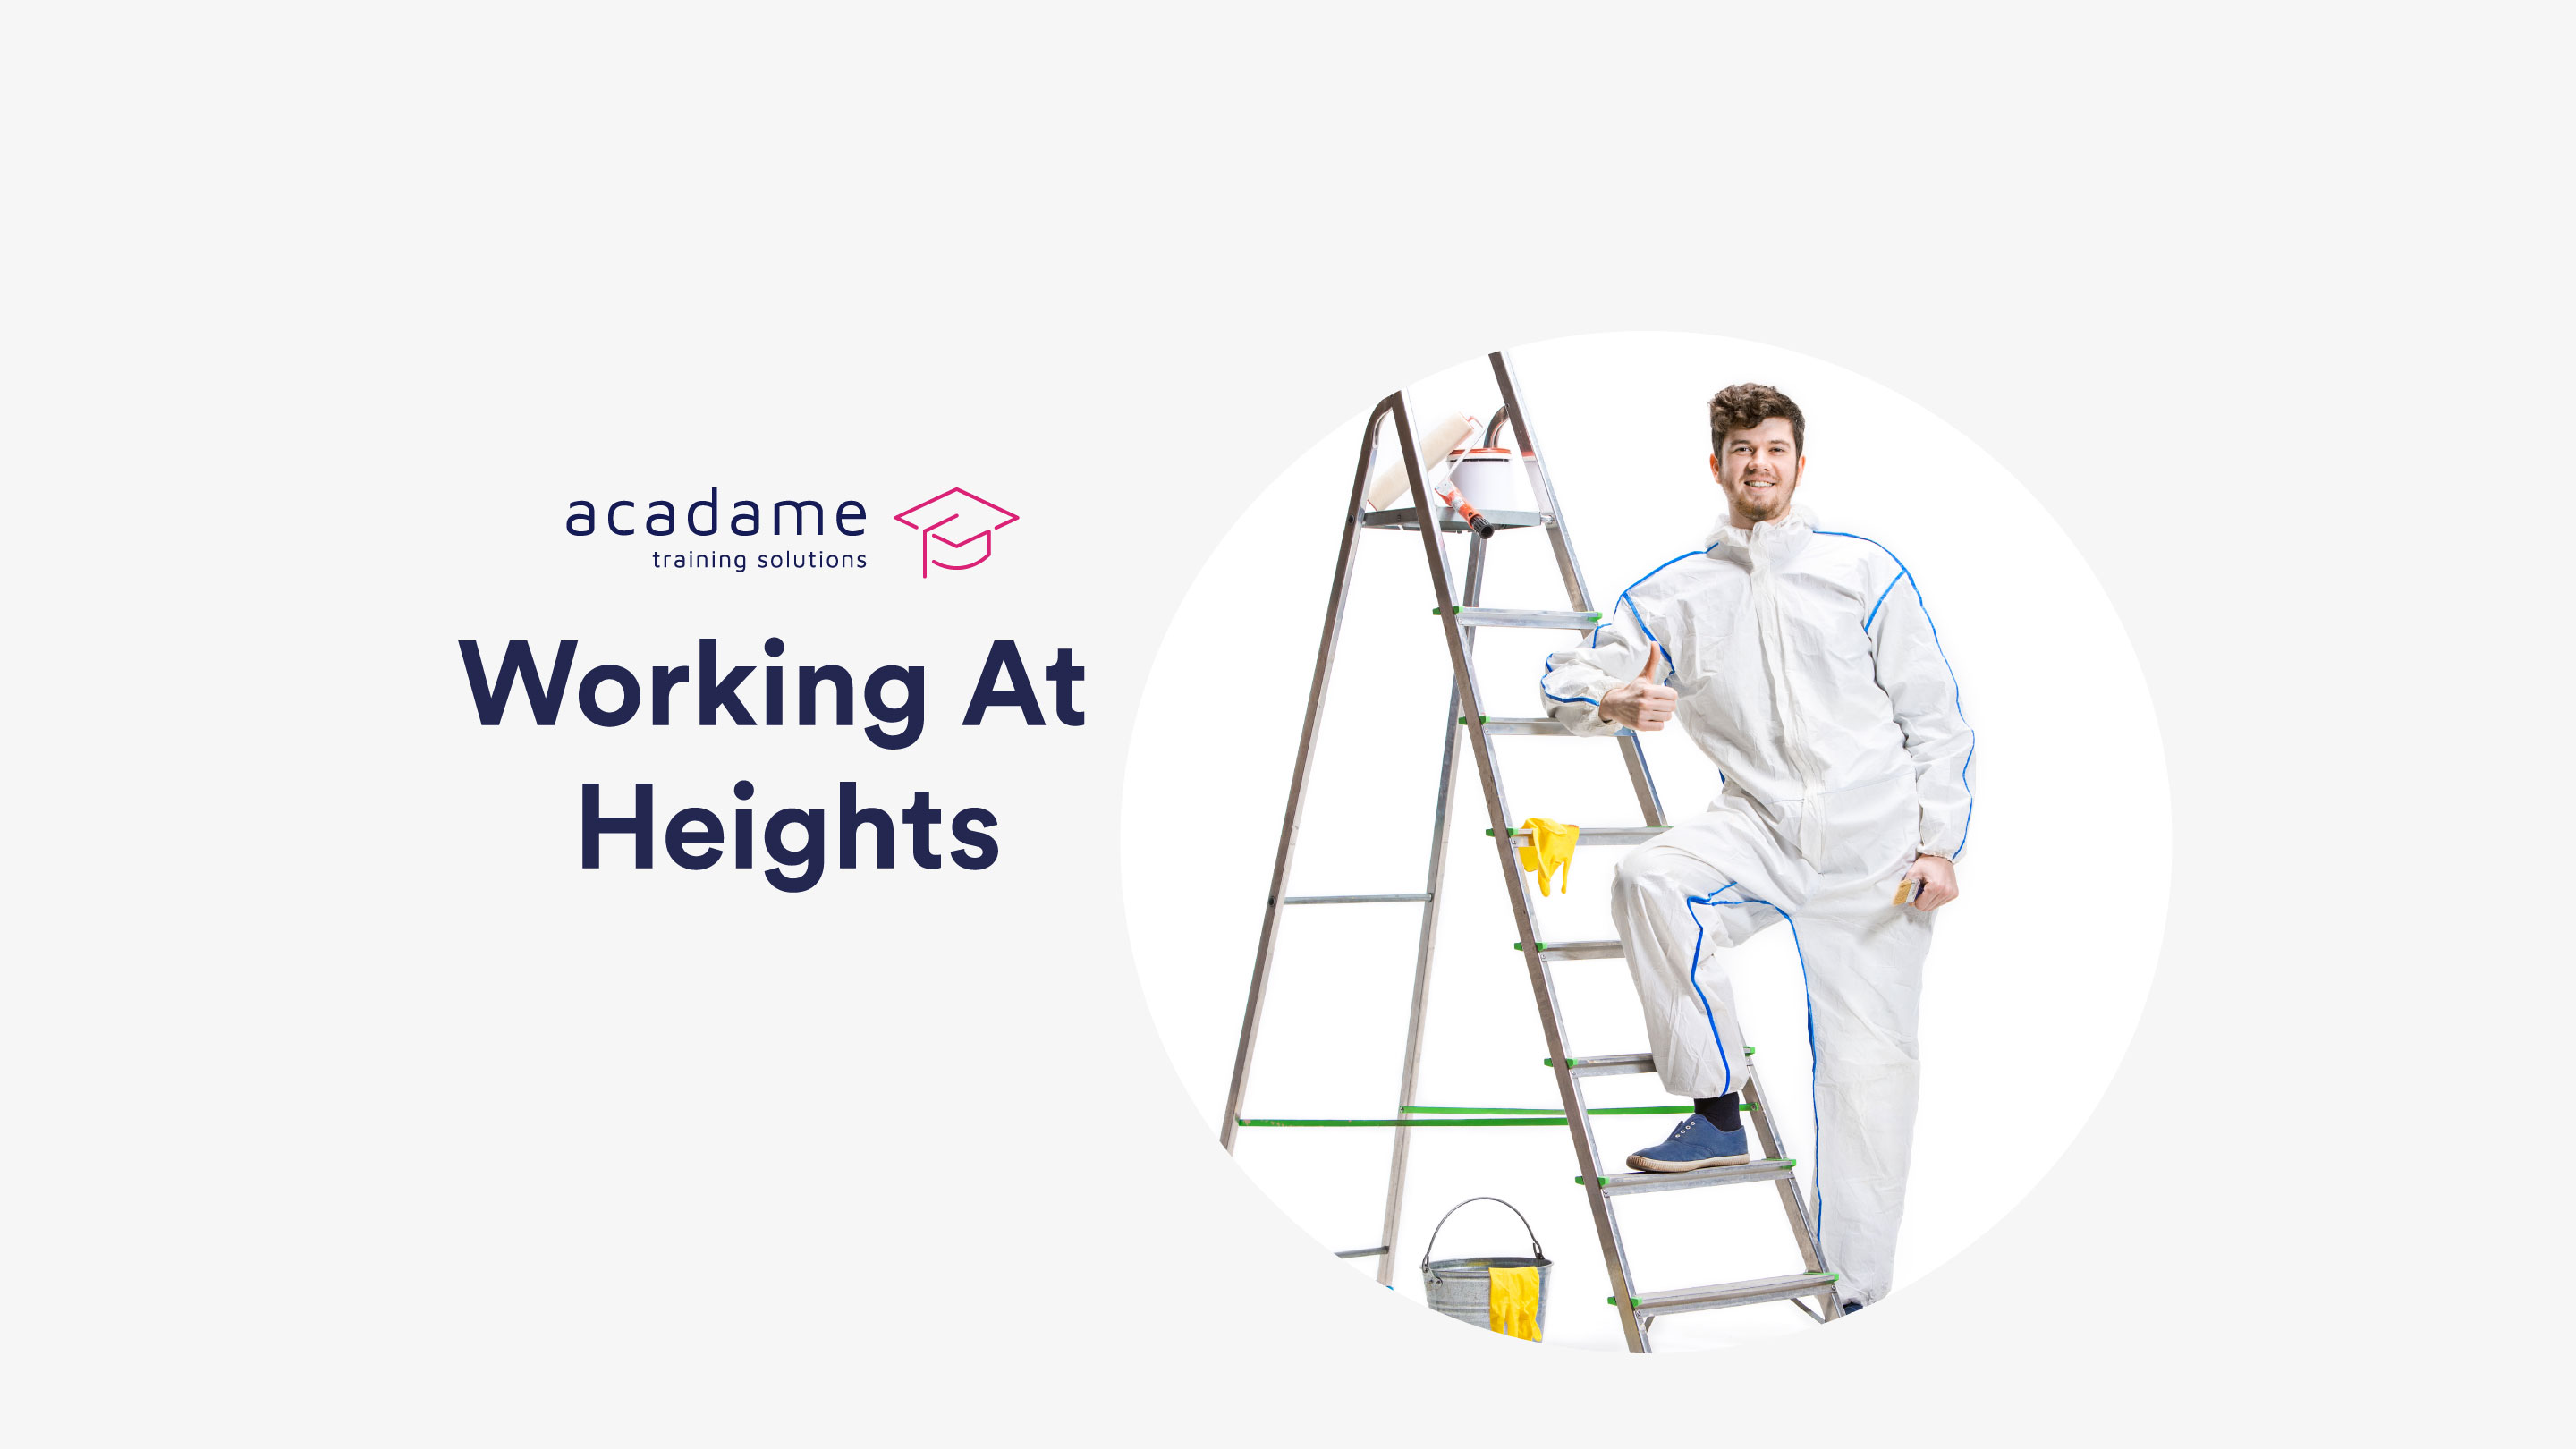 Working_At_Heights.jpg